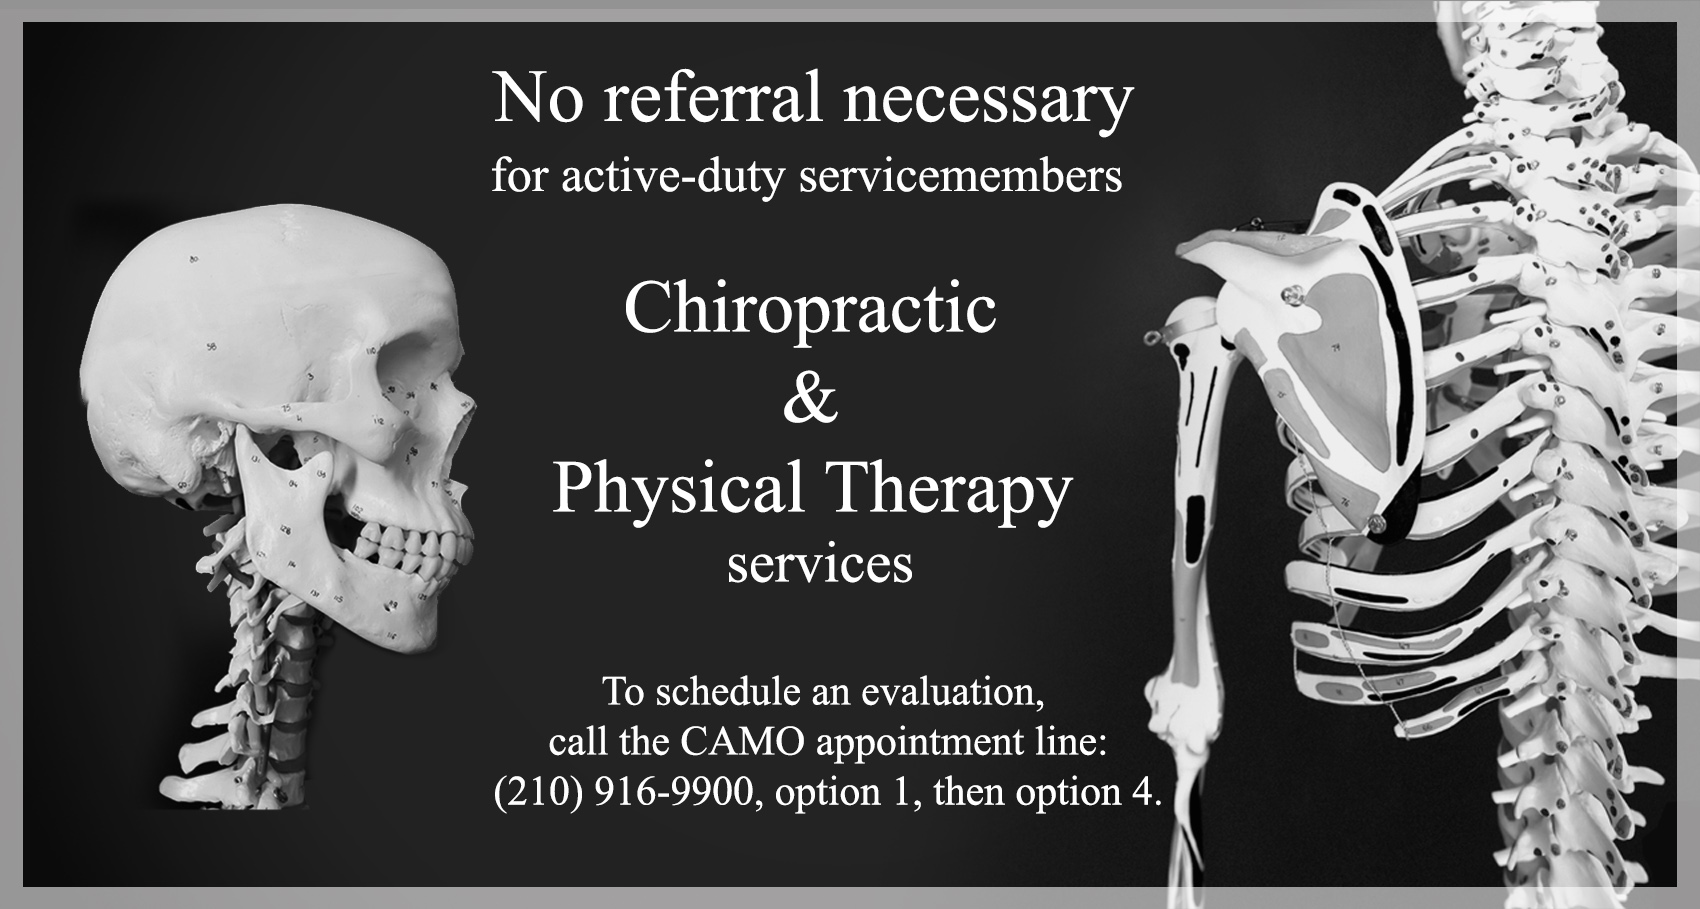 No referral necessary at chiropractic, physical therapy clinics